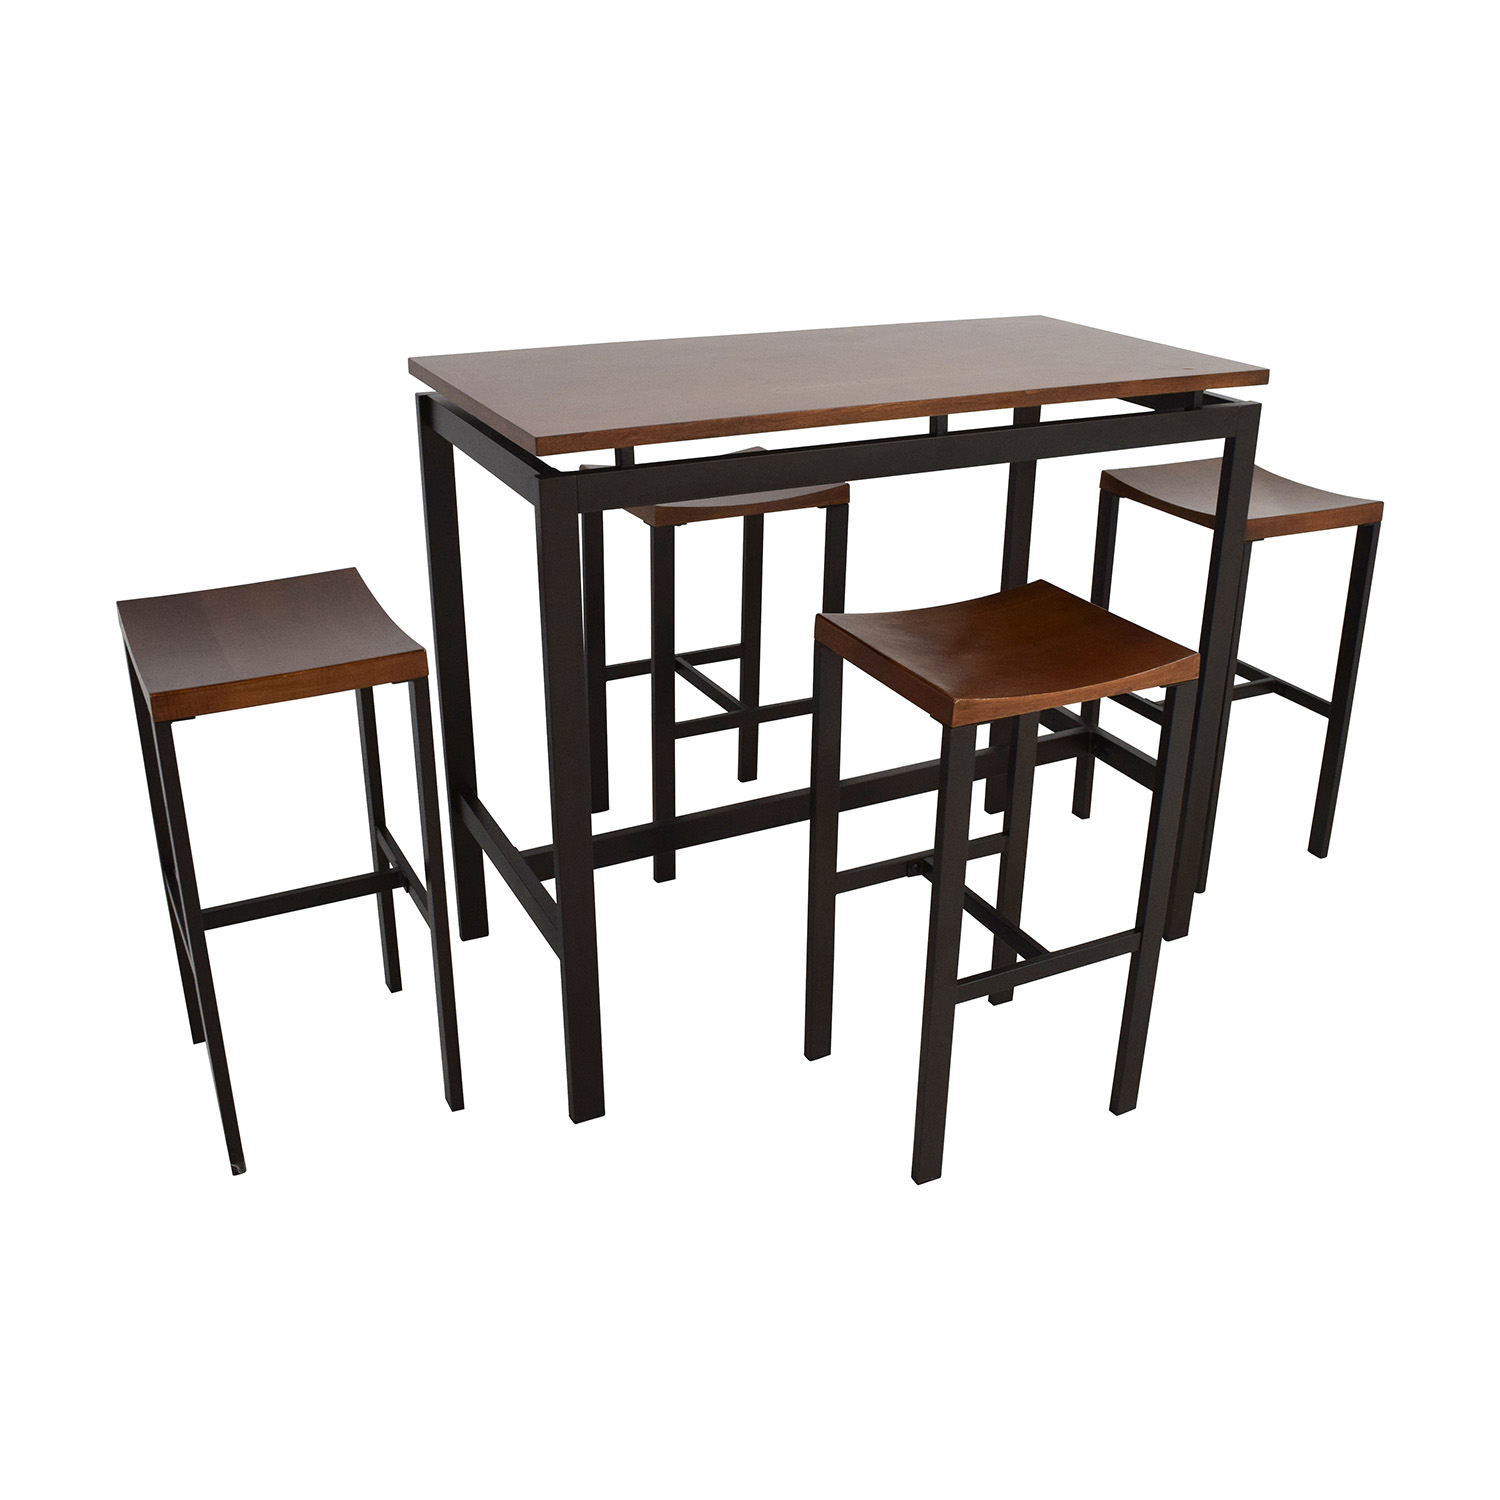 Coaster Fine Furniture Coaster Fine Furniture Atlus Counter Height Table price